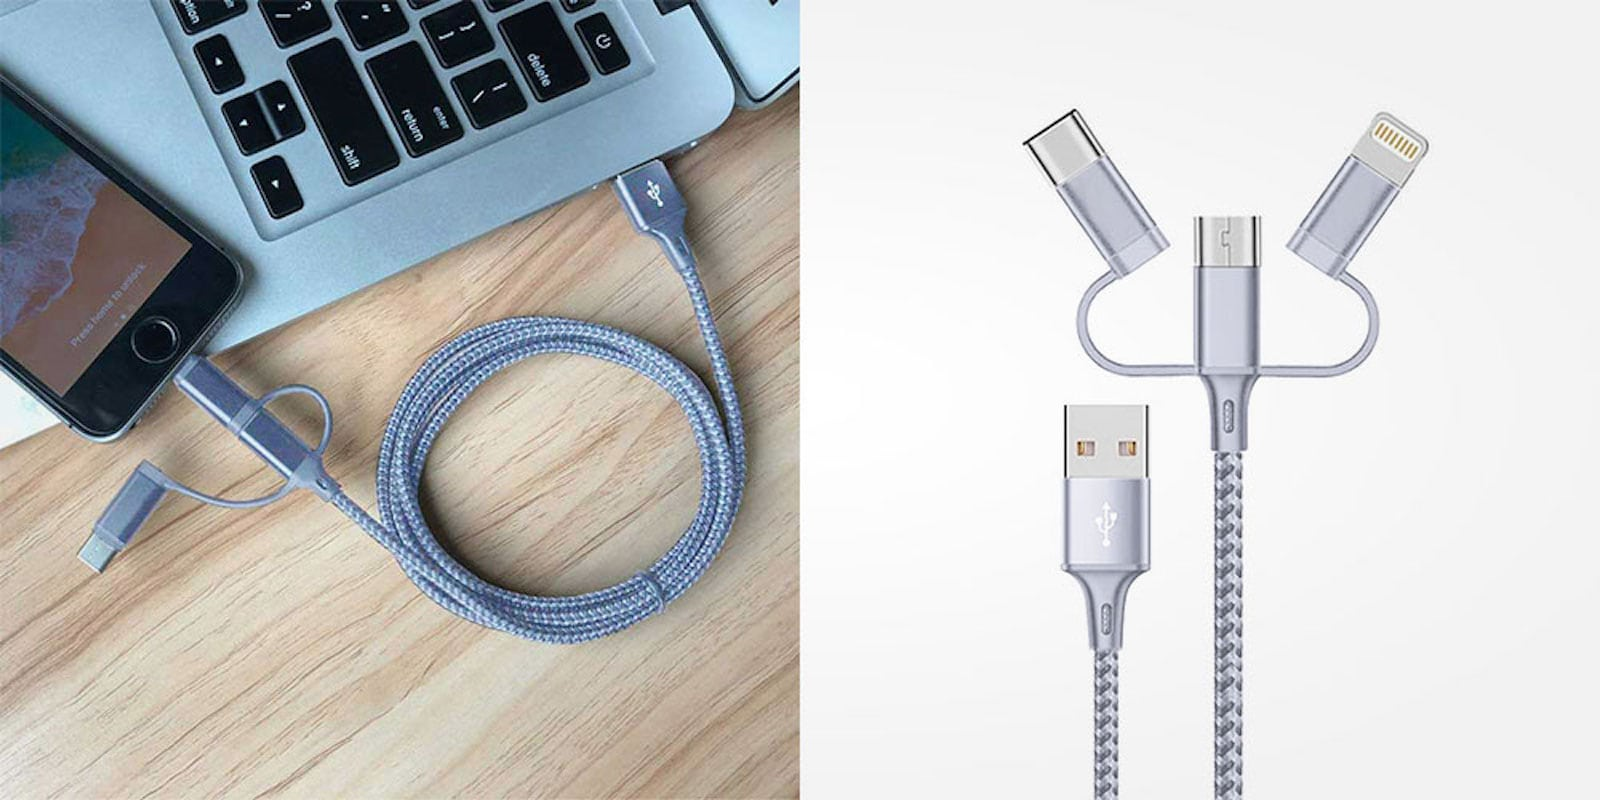 This single cable can charge and sync Micro USB, Lightning, and USB-C devices.